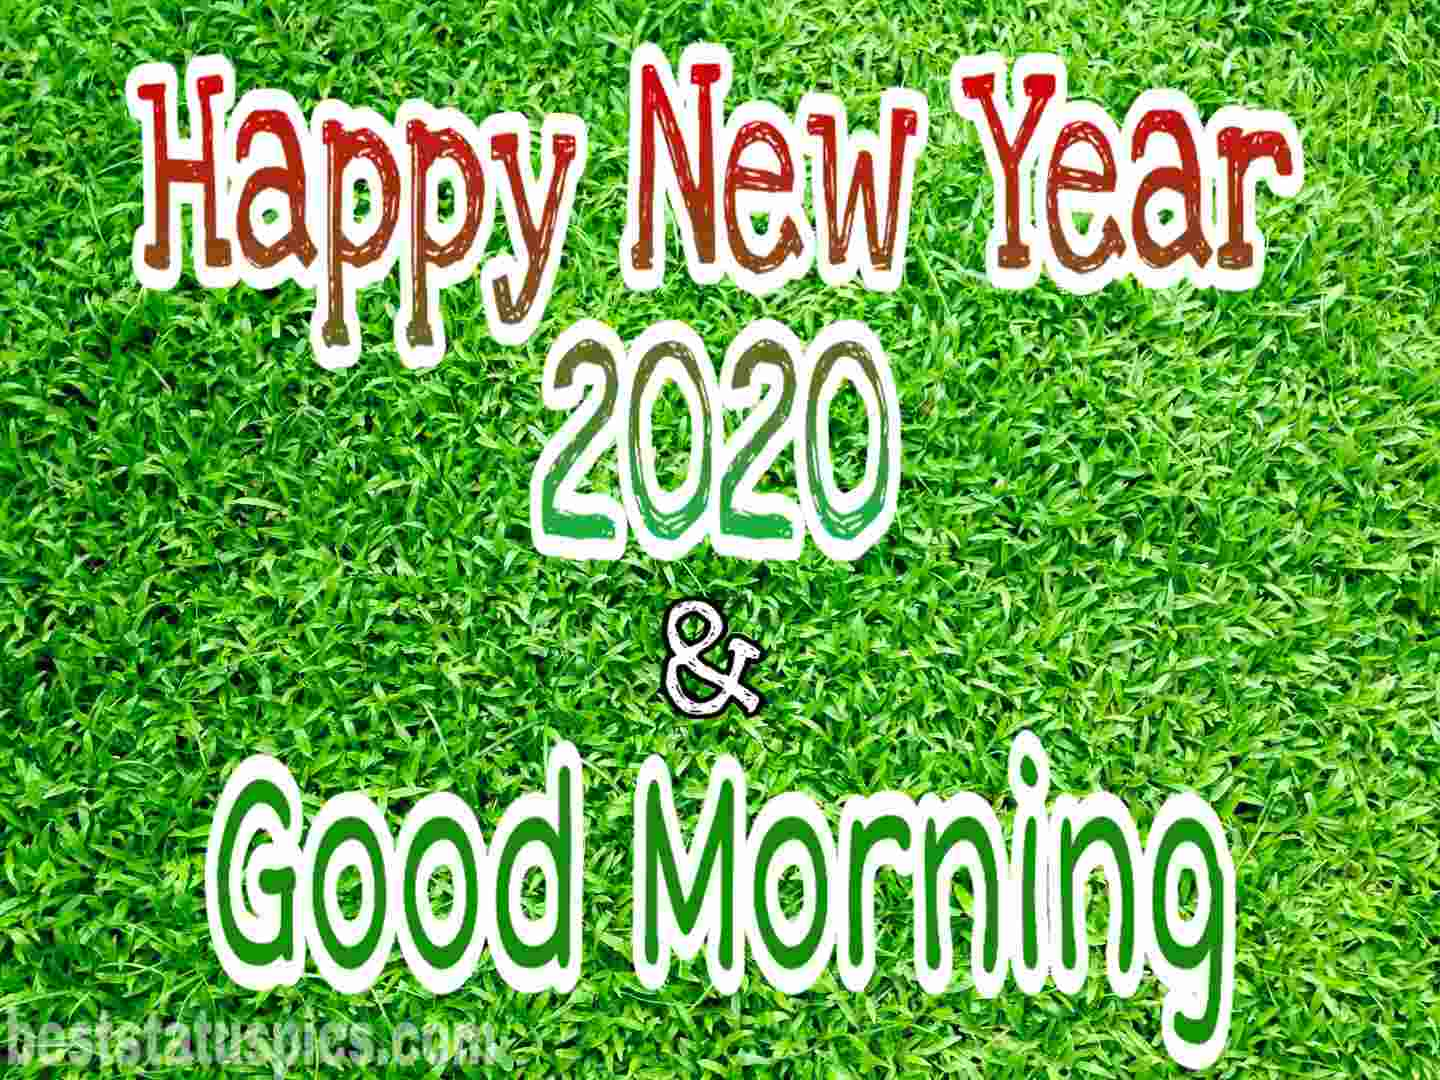 Good morning happy new year 2020 Facebook Story